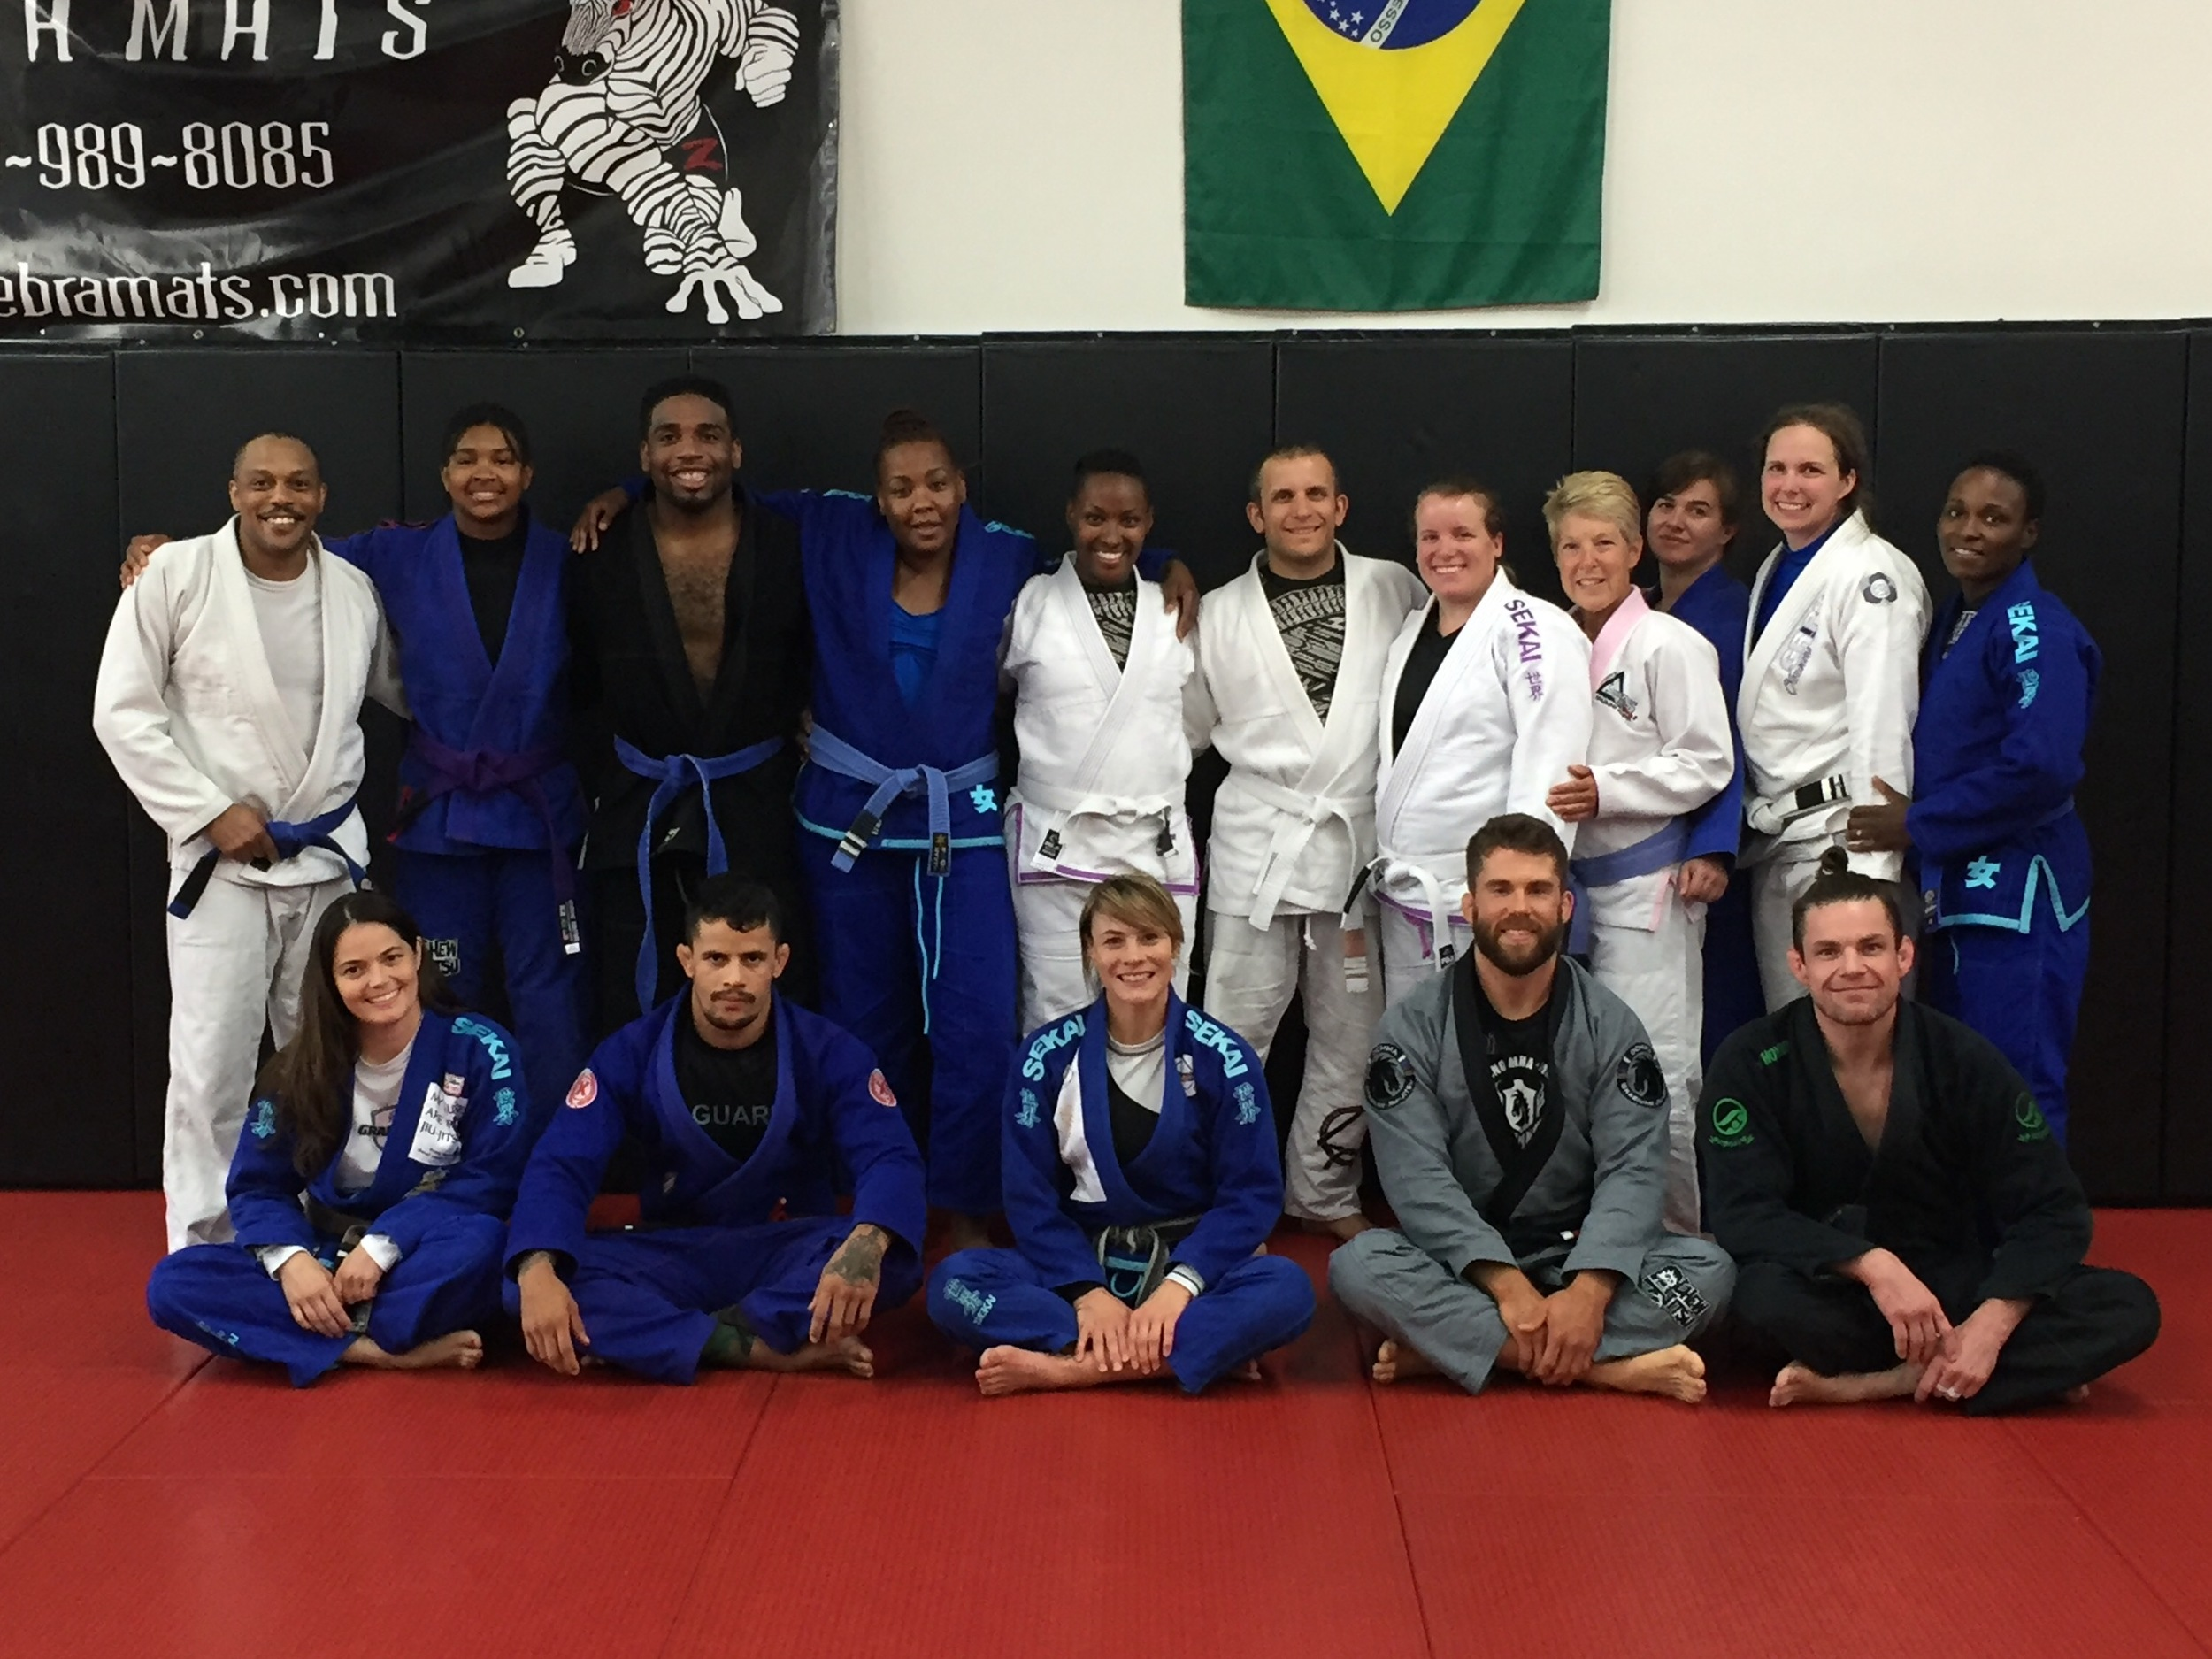 My seminar. Some familiar faces and some new ones.